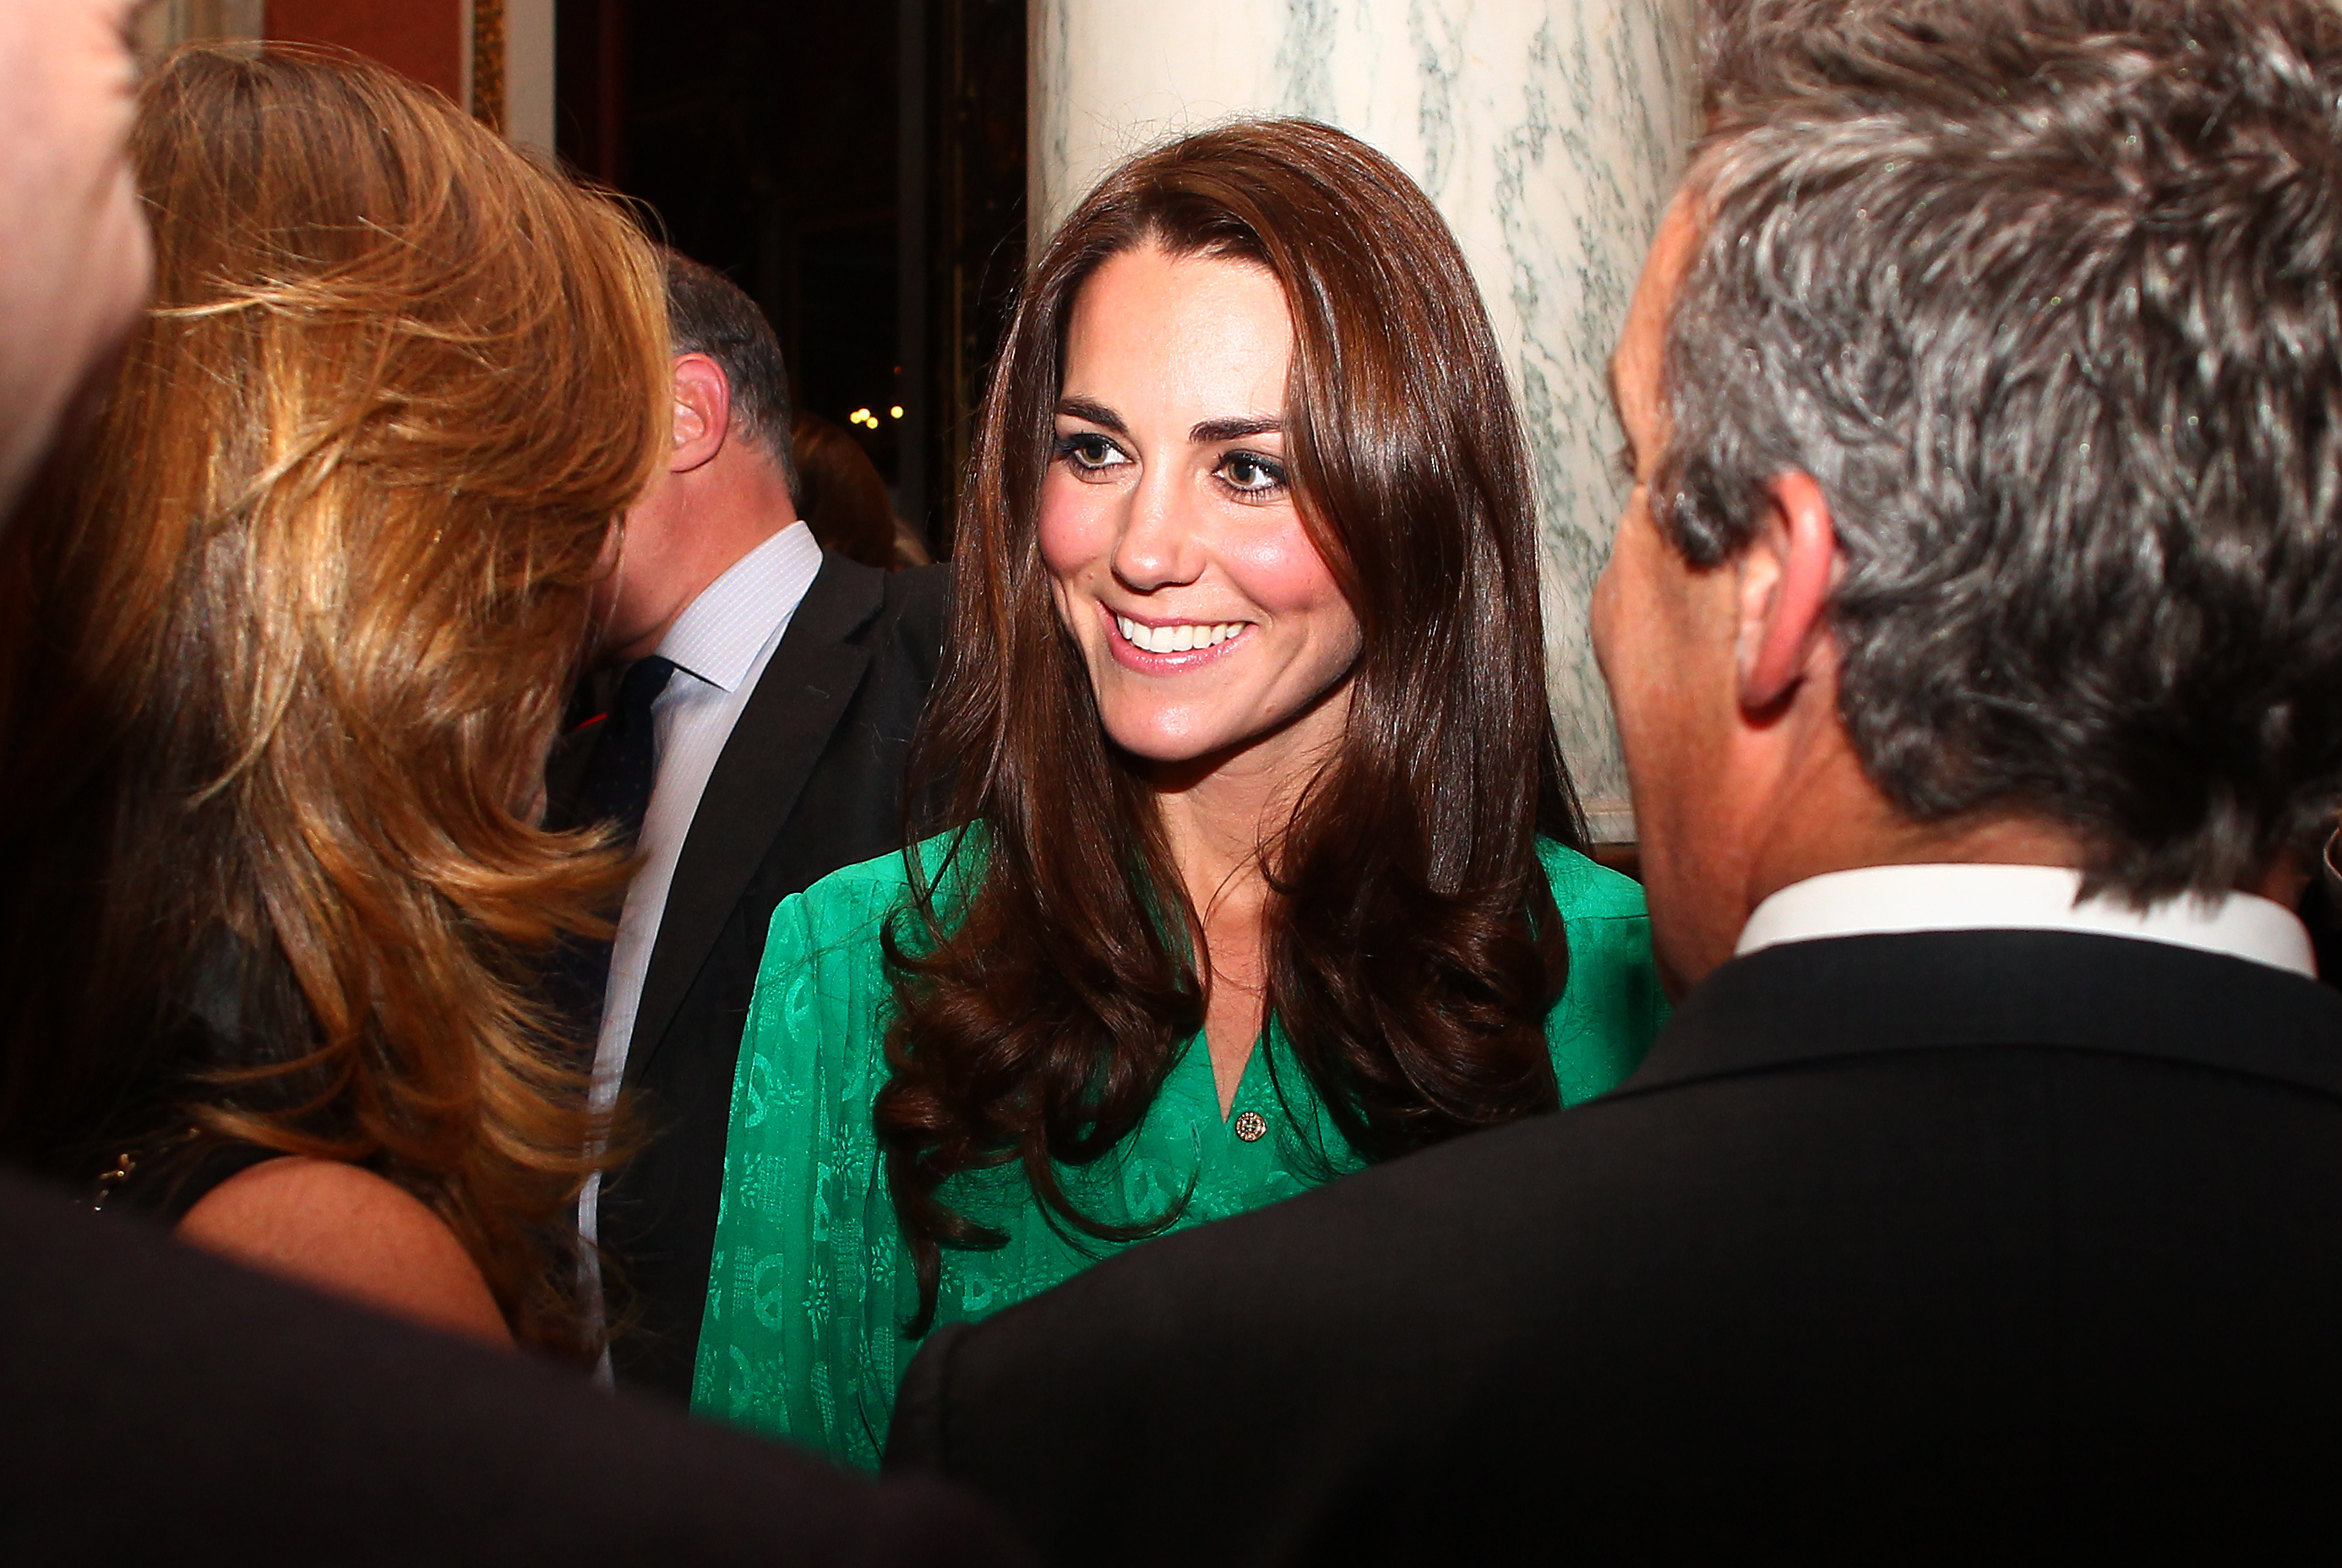 Kate Middleton in a green dress.